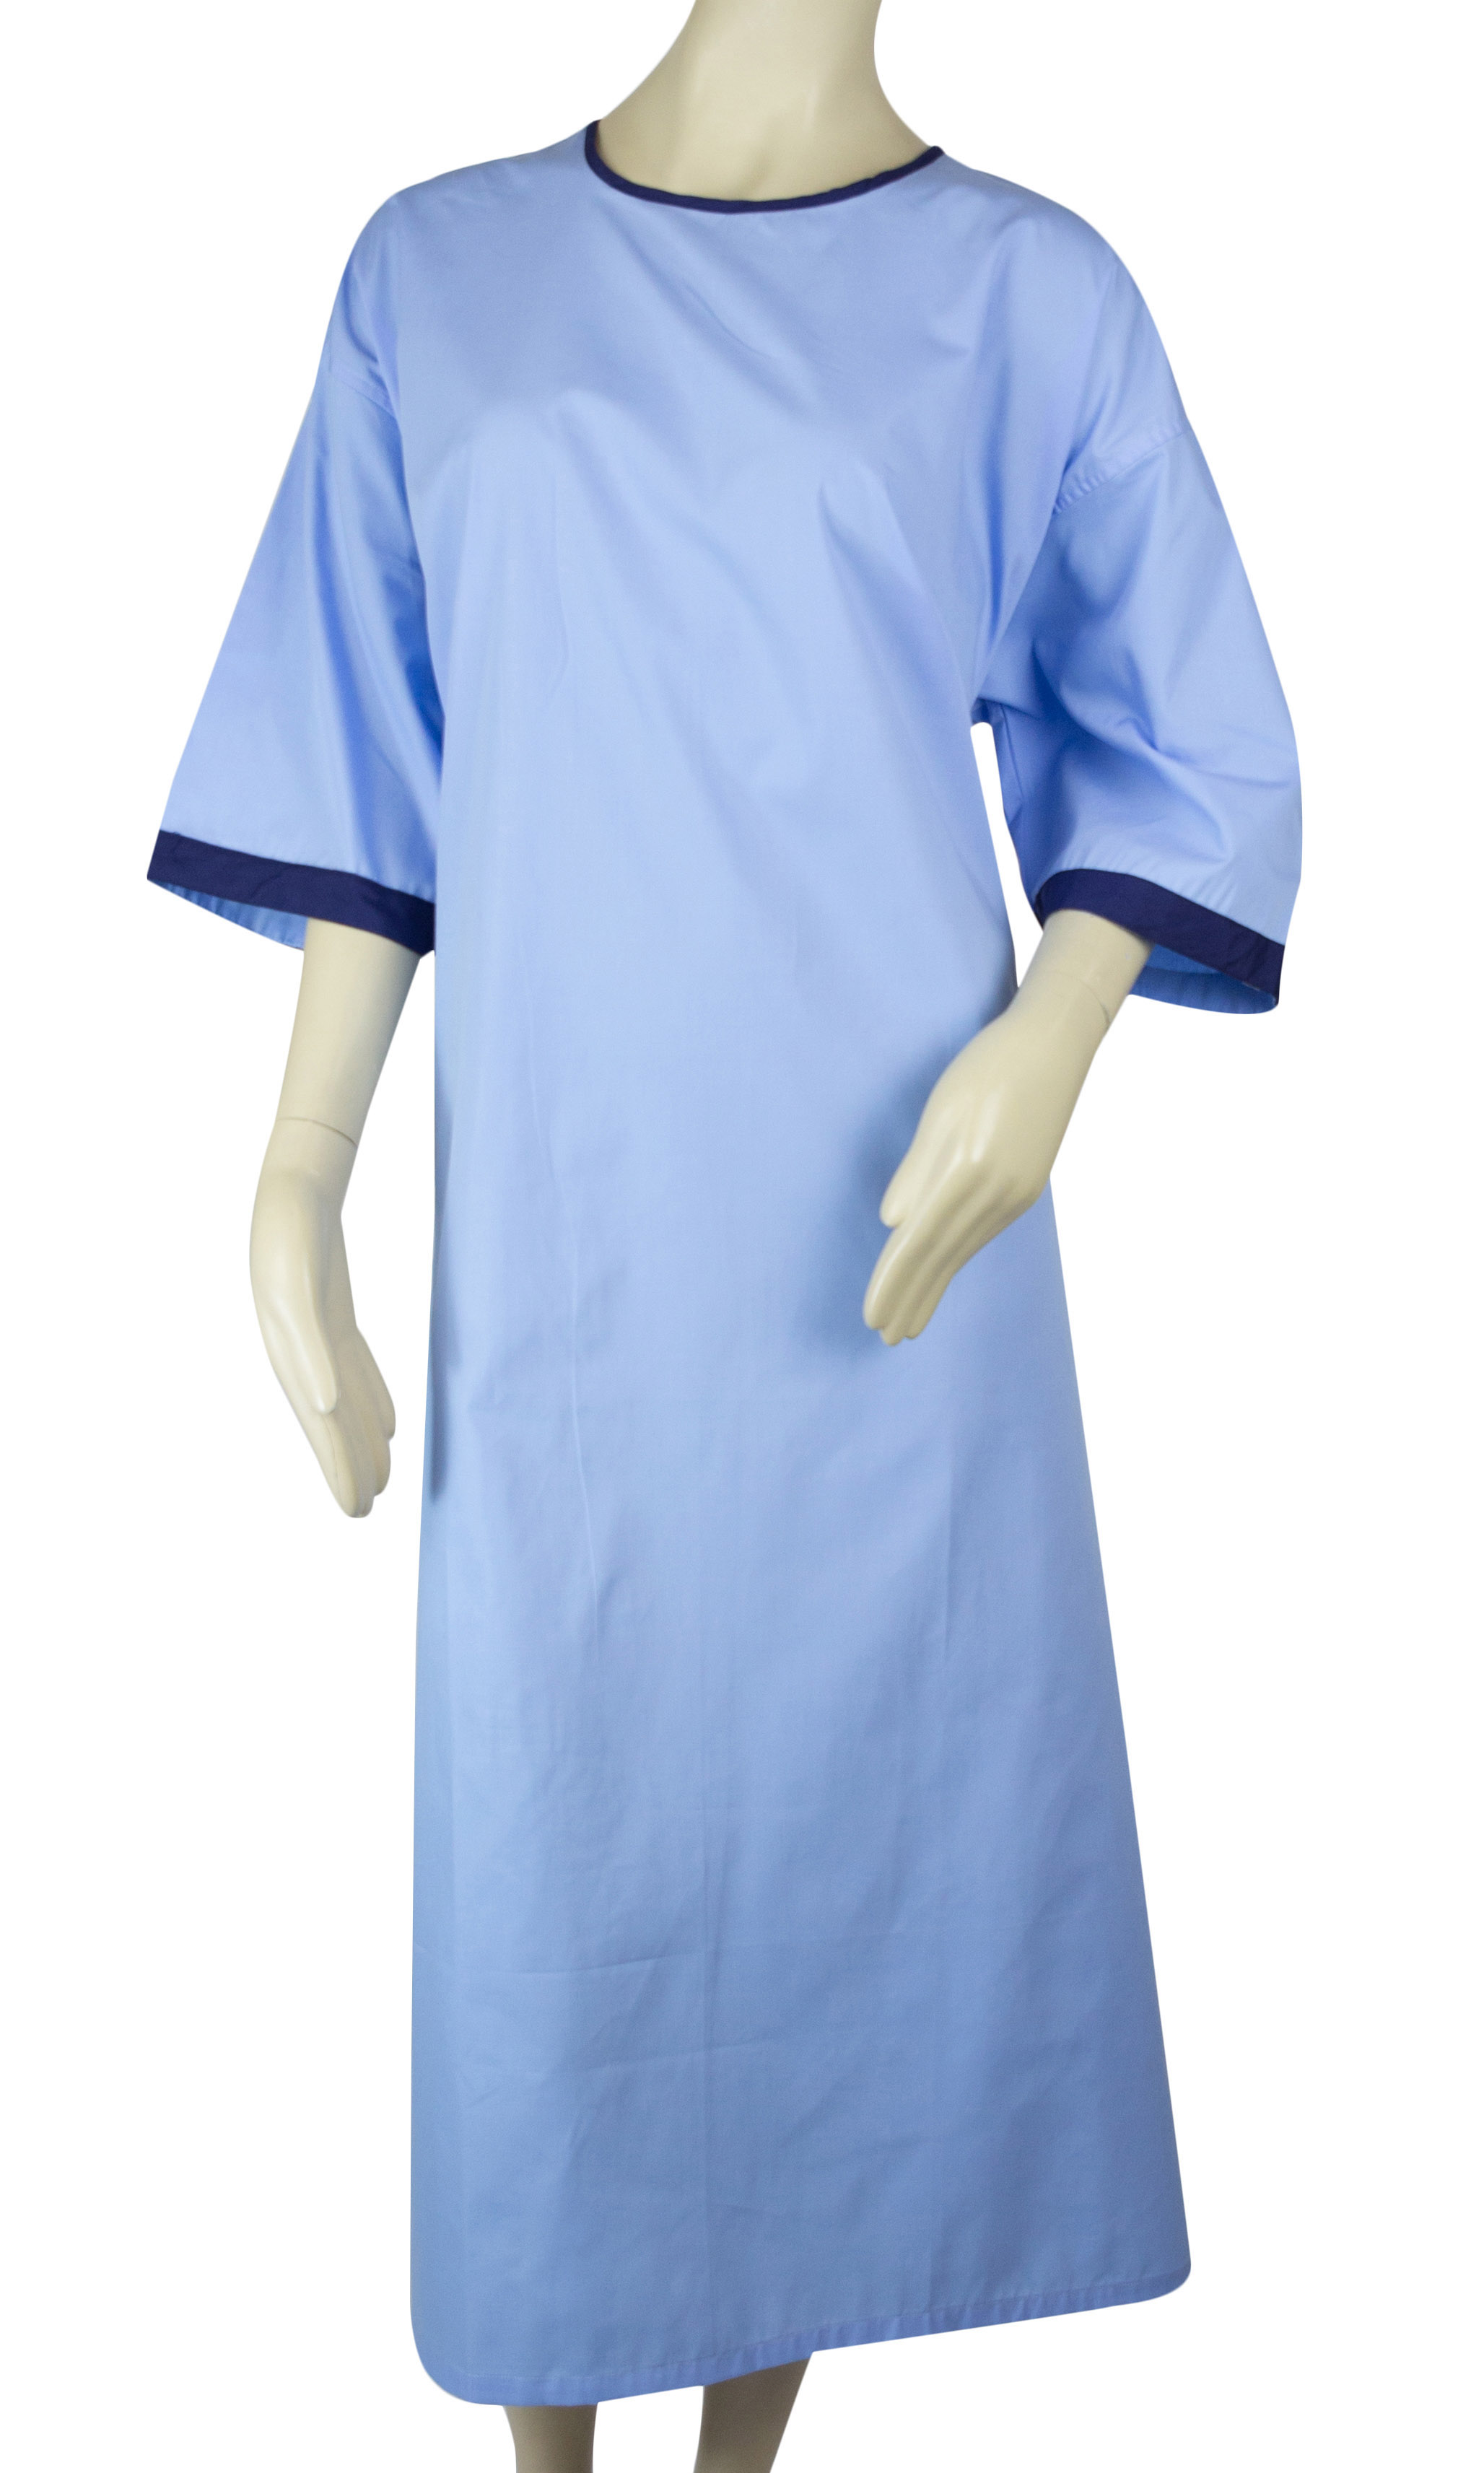 PatientGown-BS20